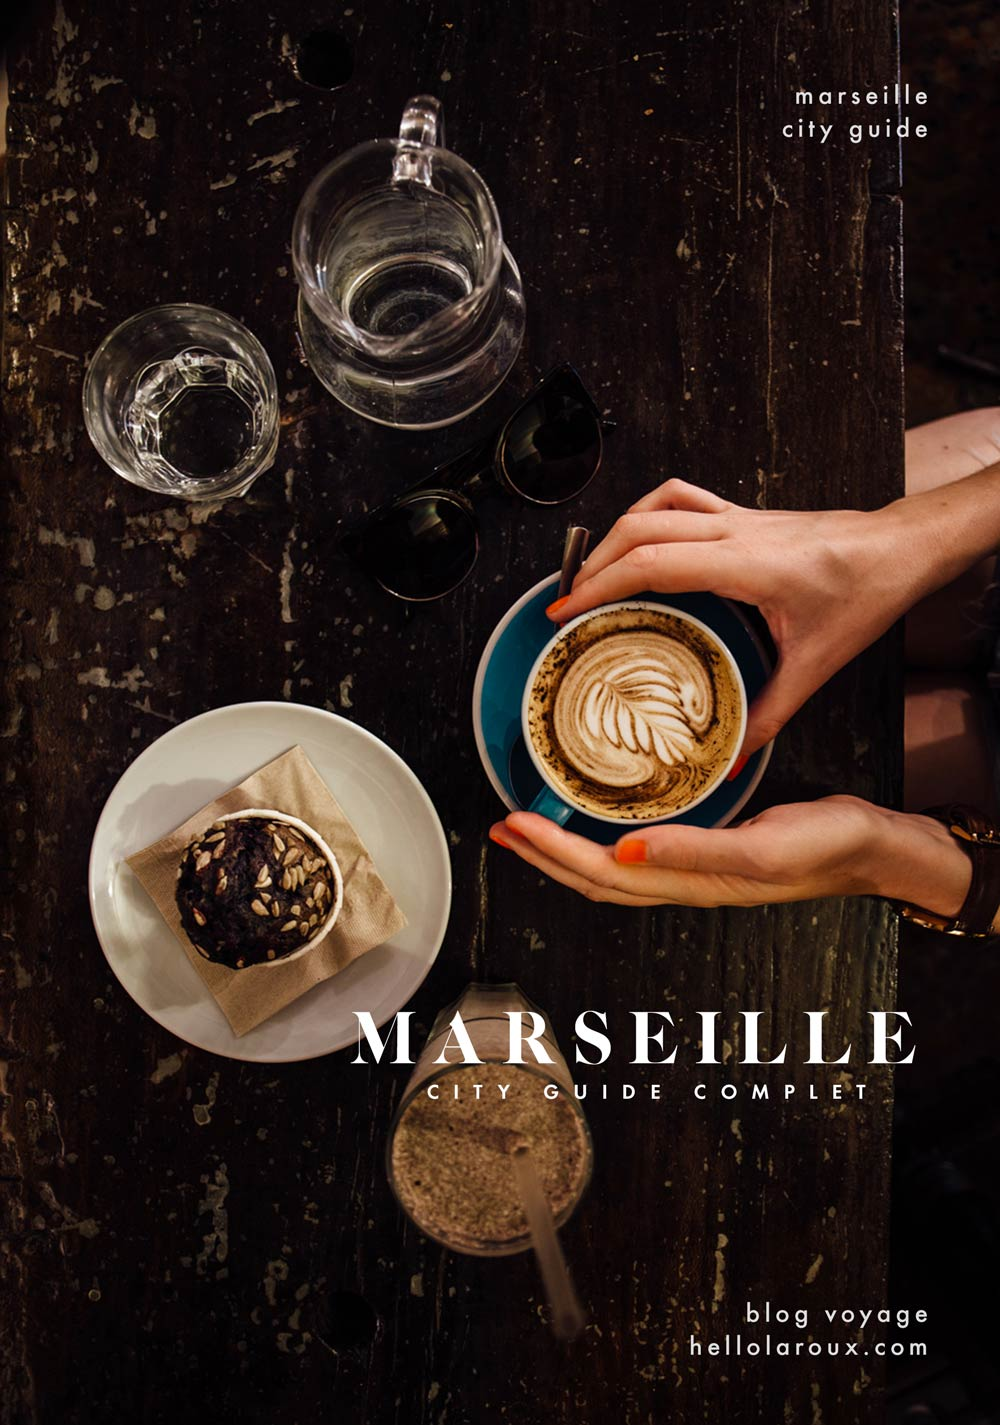 Ou manger a Marseille ? Mon city guide complet pour un week-end à Marseille